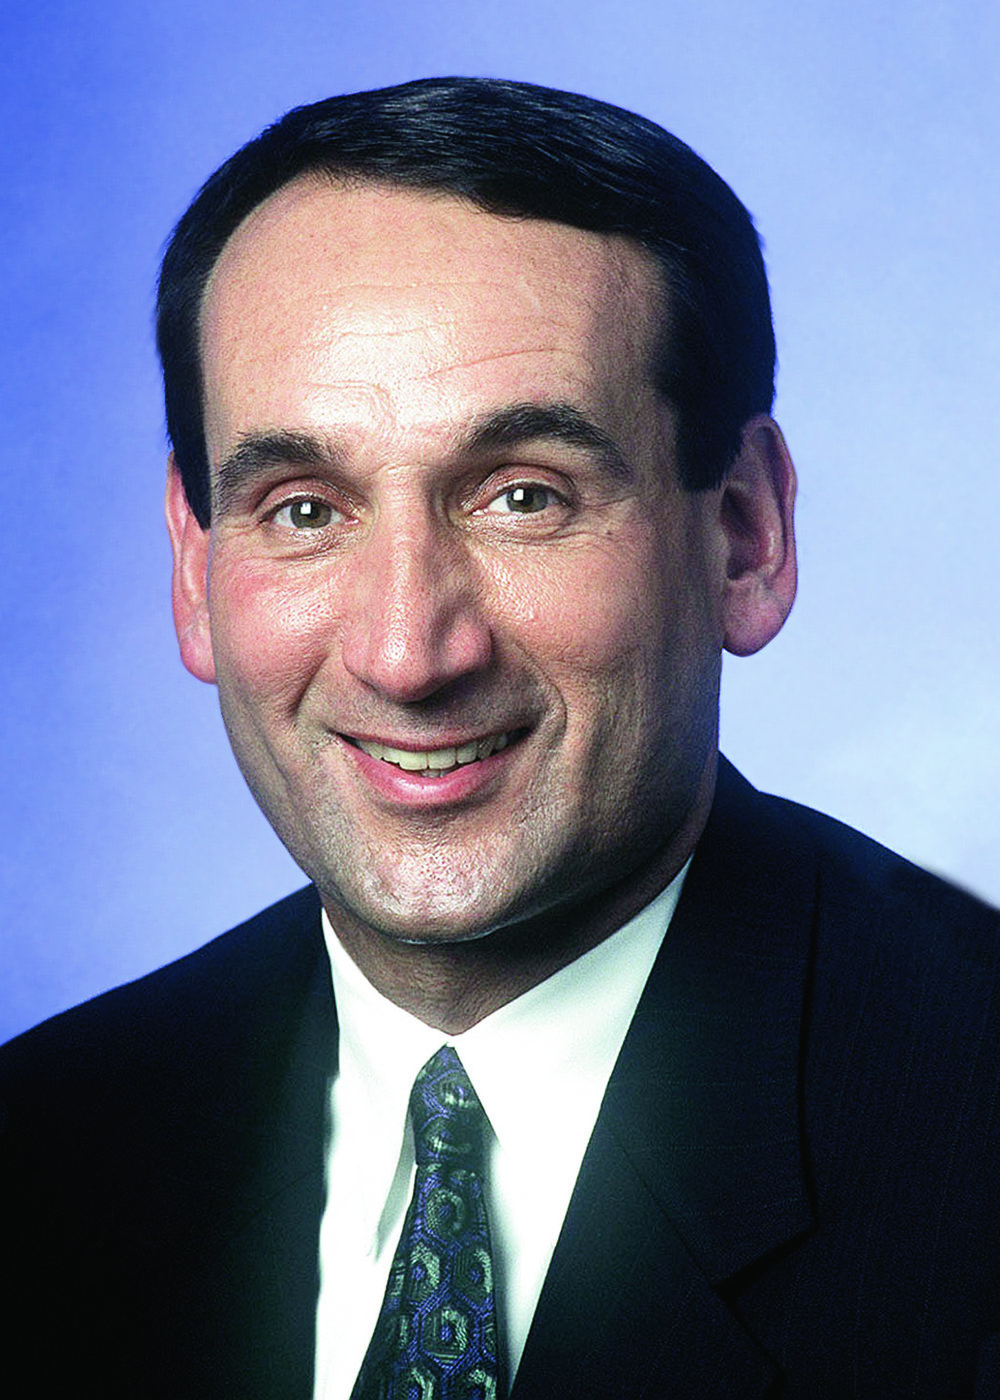 MIKE KRZYZEWSKI      HEAD MEN'S BASKETBALL COACH,      DUKE UNIVERSITY